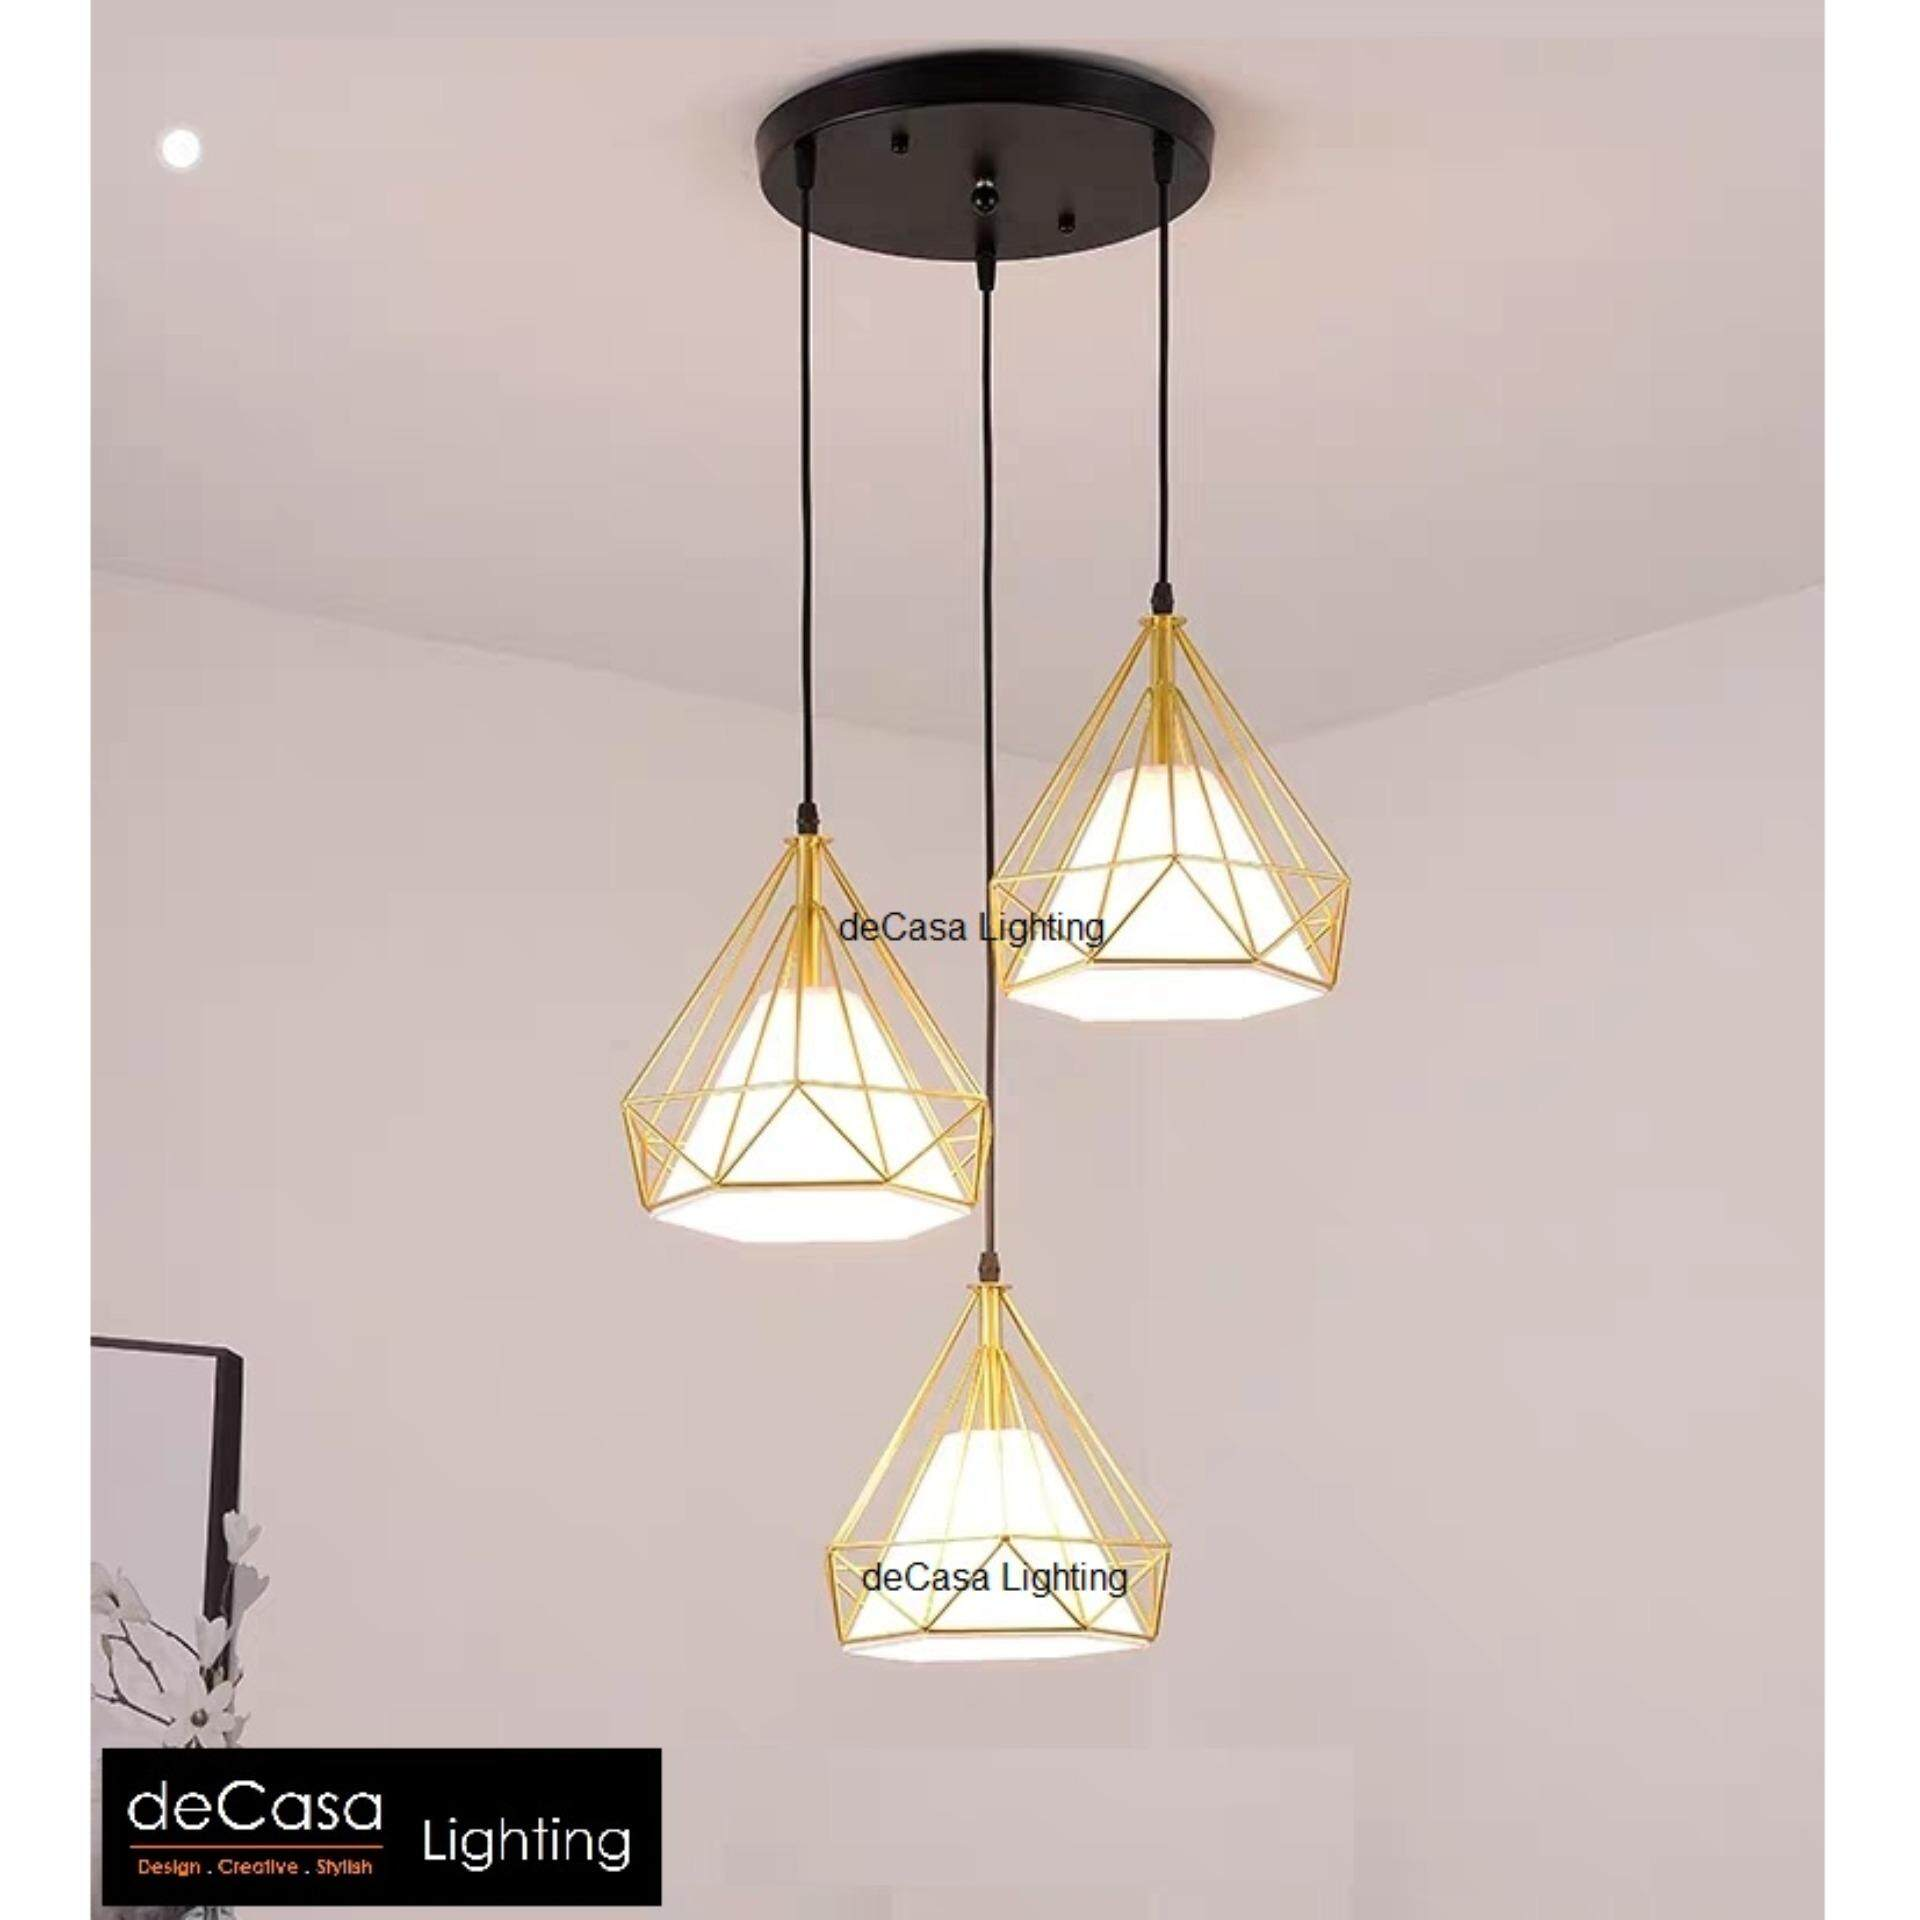 Best Ceiling Light Set Of 3 In 1 Round Base Decorative Diamond Pendant Decasa Hanging Ly Ty201 25 3rb